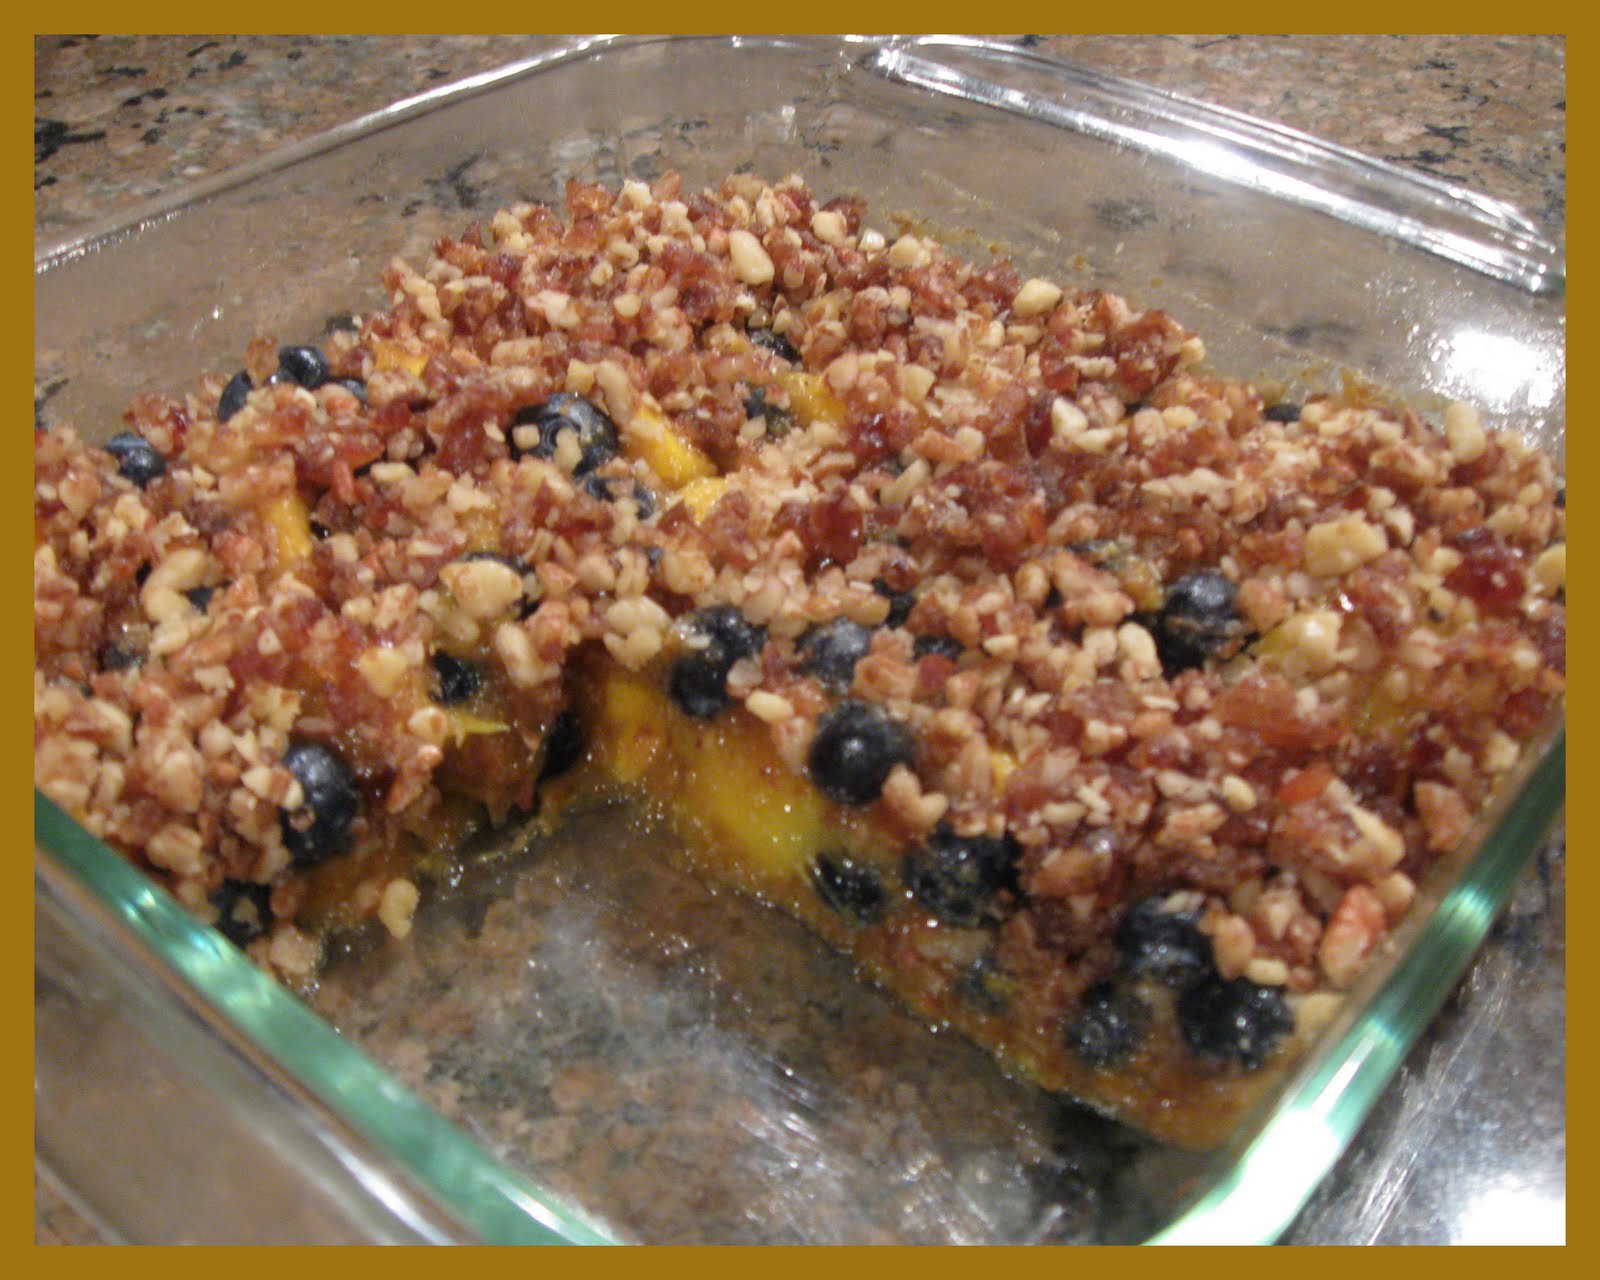 The Health Seekers Kitchen: Raw Peach, Mango and Blueberry Crisp